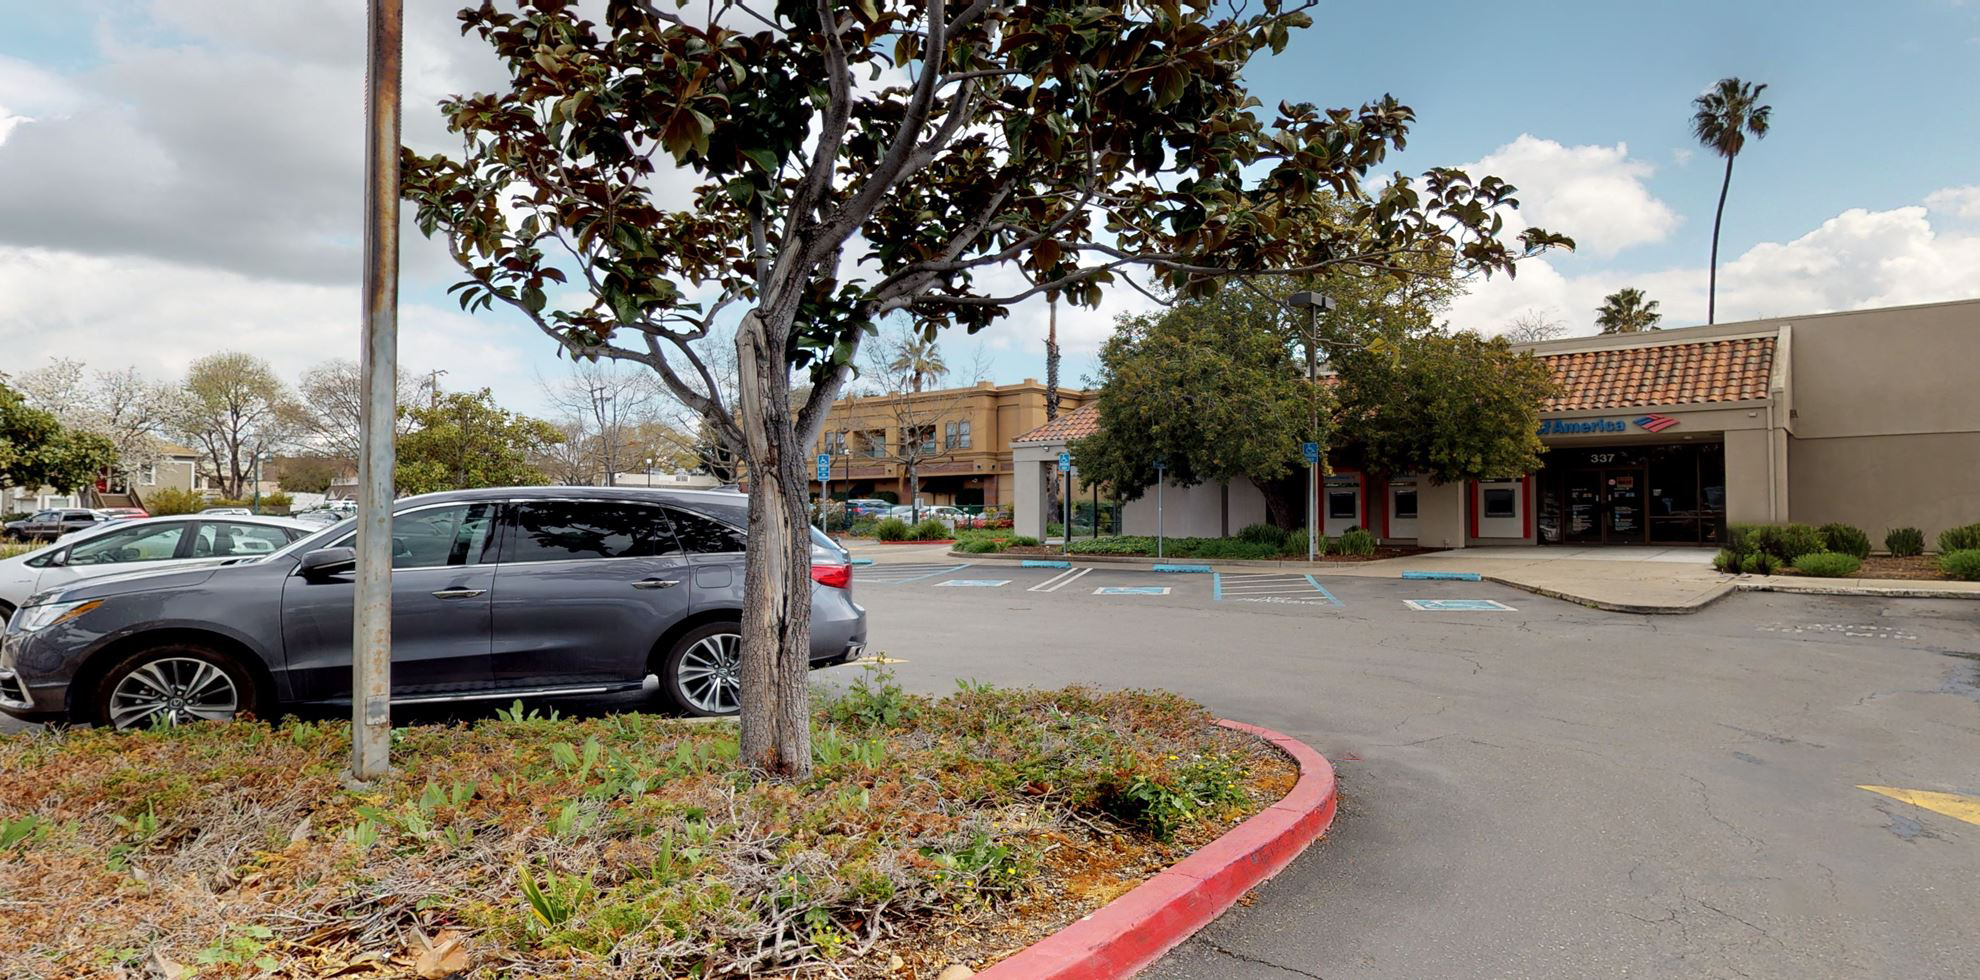 Bank of America financial center with walk-up ATM | 337 Main St, Pleasanton, CA 94566